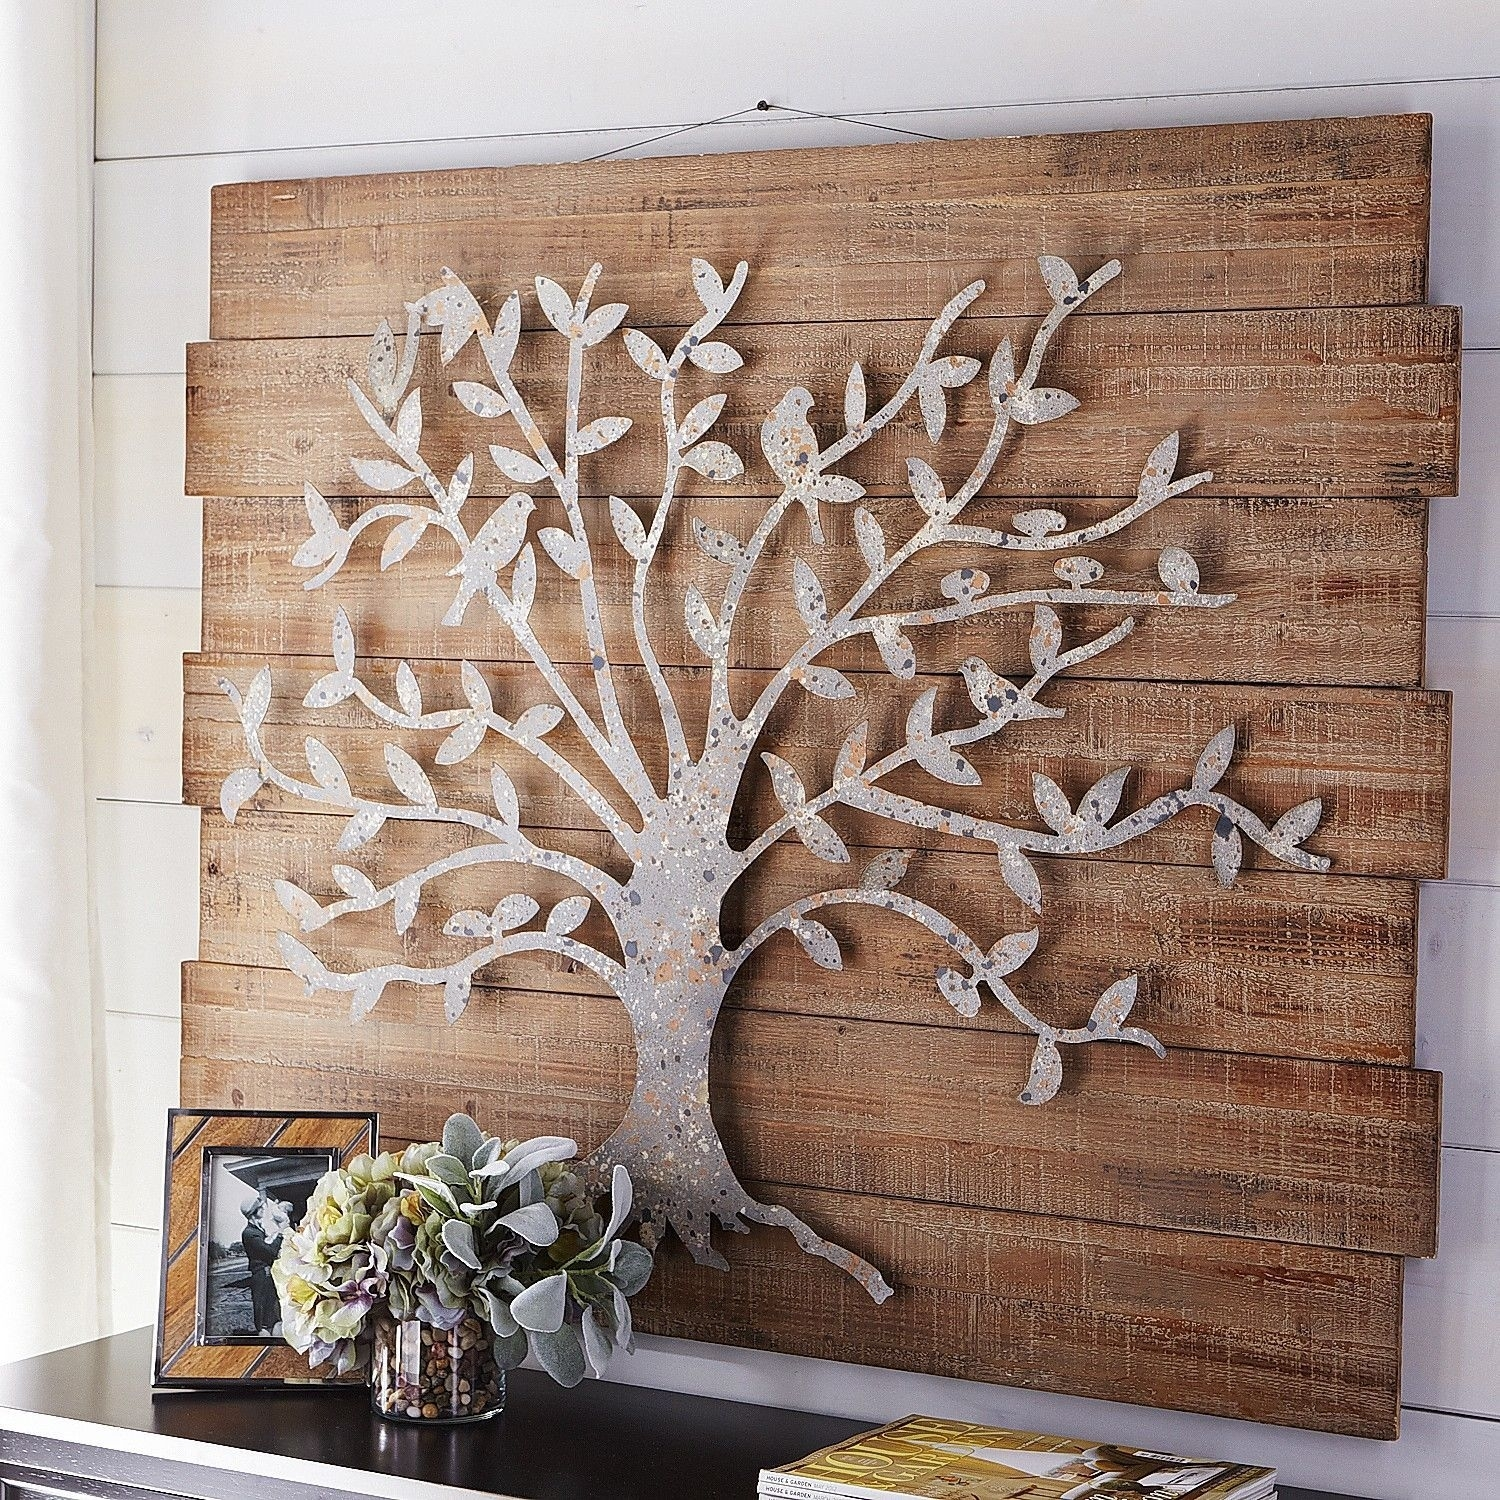 Timeless Tree Wall Decor | Pier 1 Imports … | Metal Work | Pinte… Inside Most Current Metal Wall Art Decors (View 3 of 15)